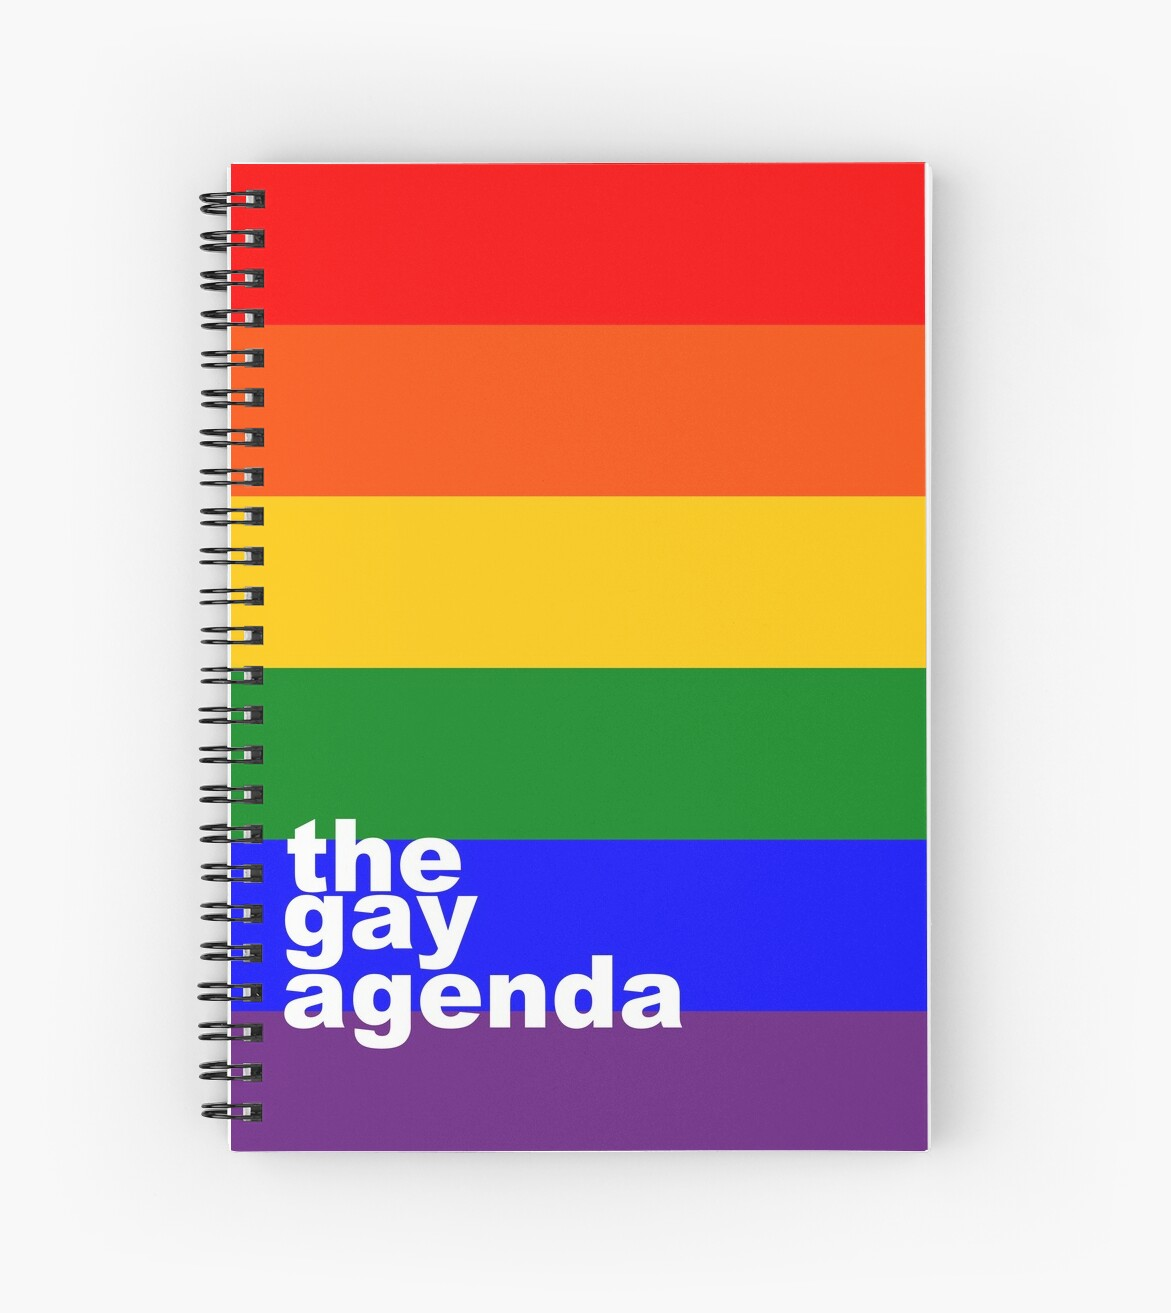 The (rainbow) gay agenda by Mhaddie